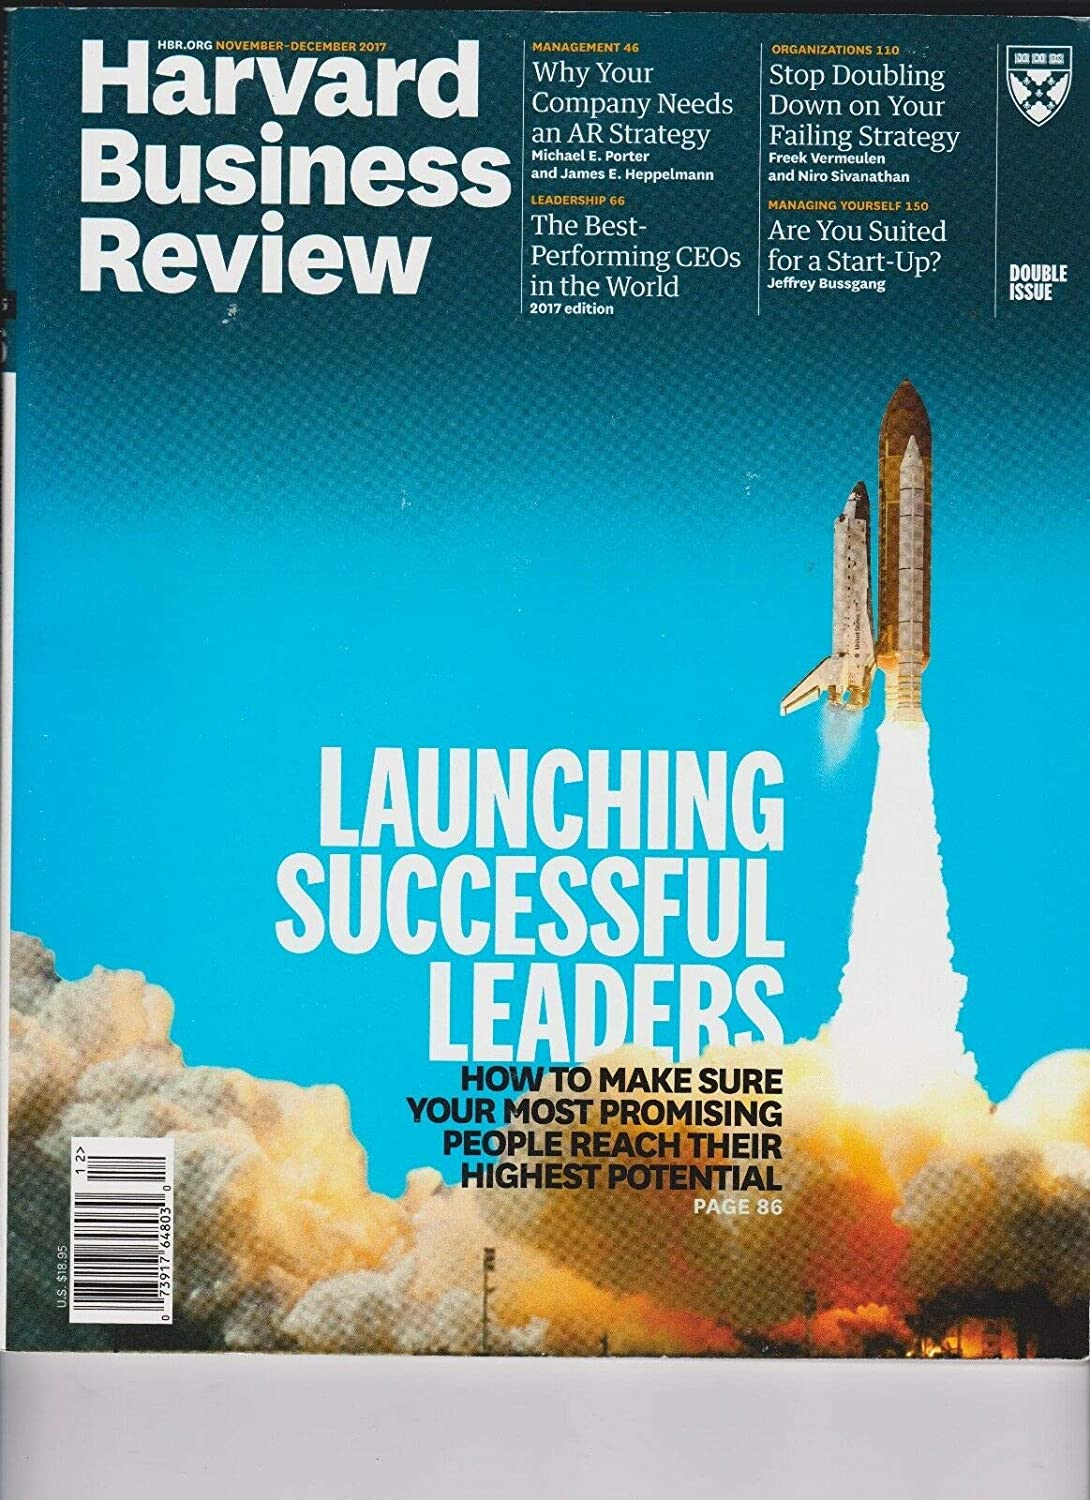 HARVARD BUSINESS REVIEW MAGAZINE NOV/DEC 2017,LAUNCHING SUCCESSFUL LEADERS. Unbranded